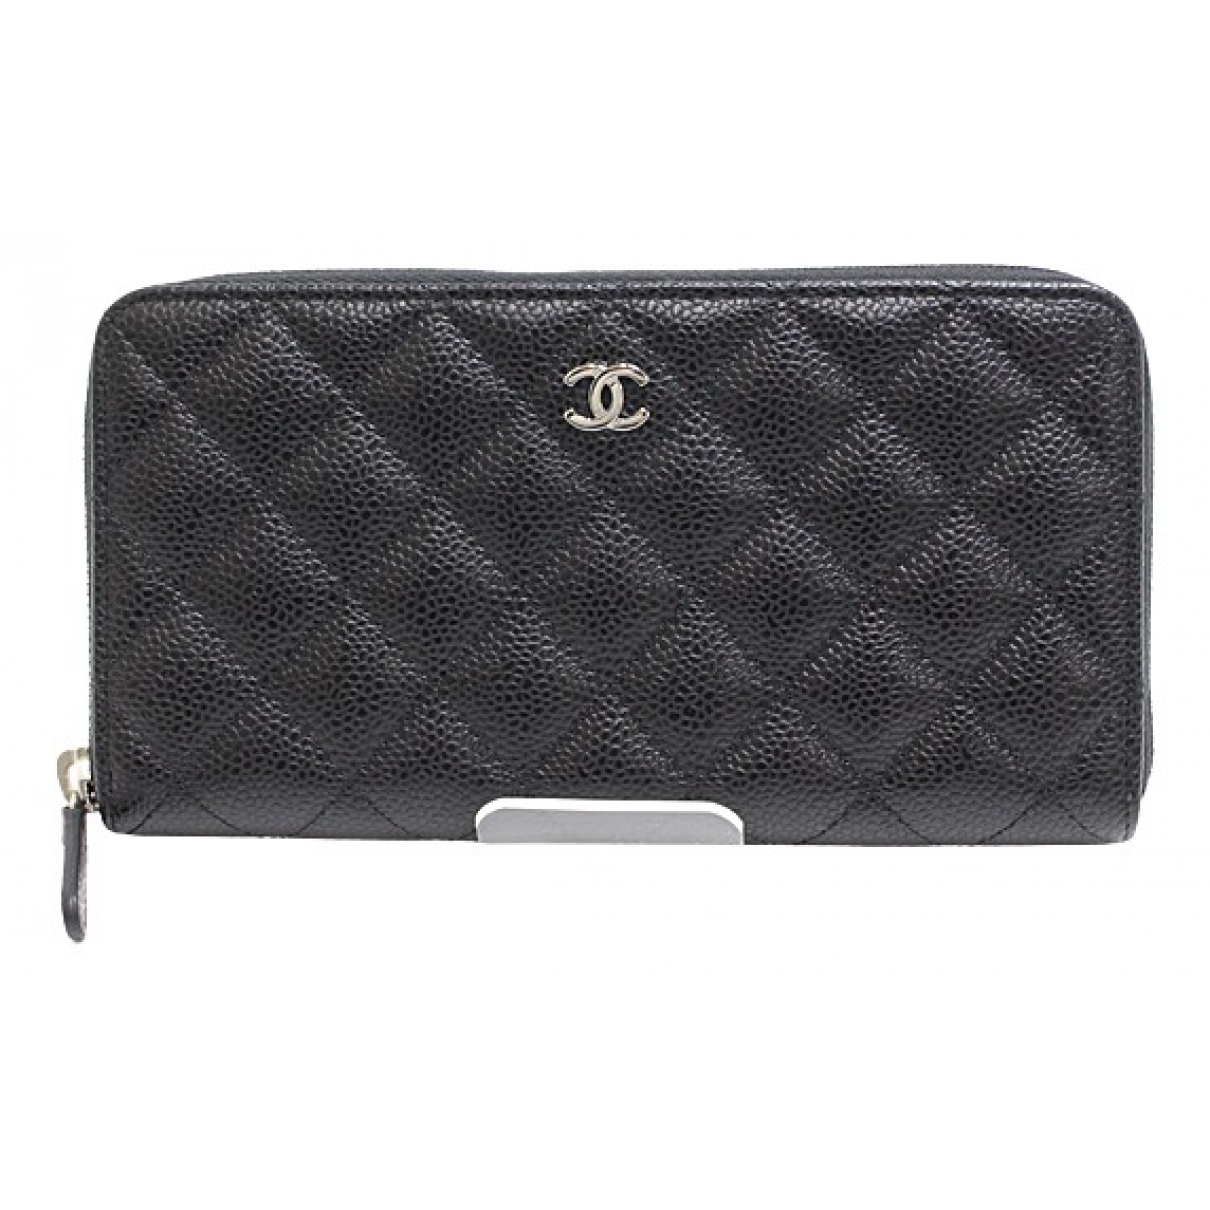 Chanel Timeless/Classique Black Leather wallet for Women N